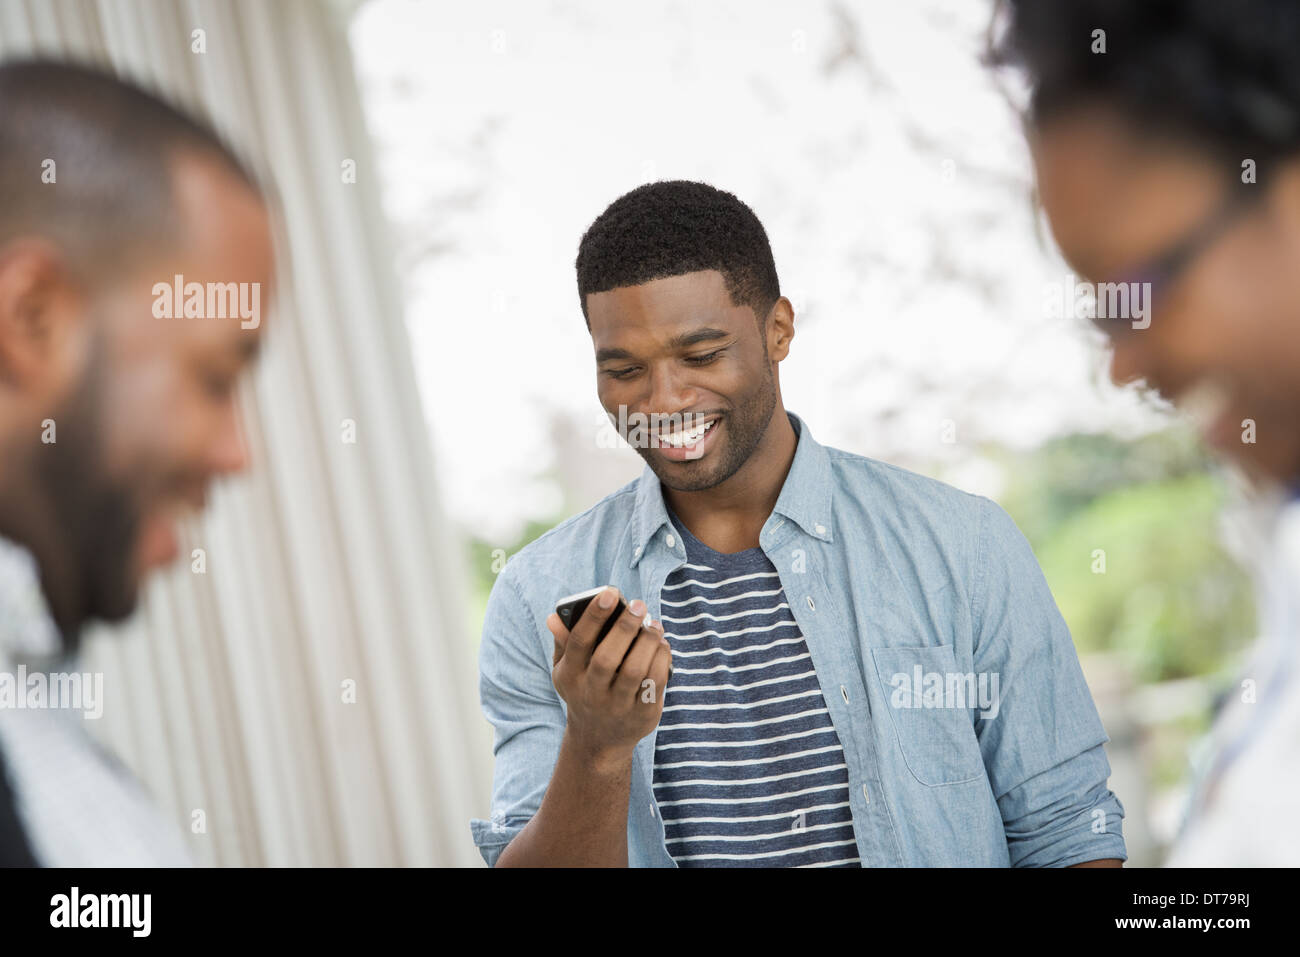 A young man checking his phone, behind a couple in the foreground. - Stock Image